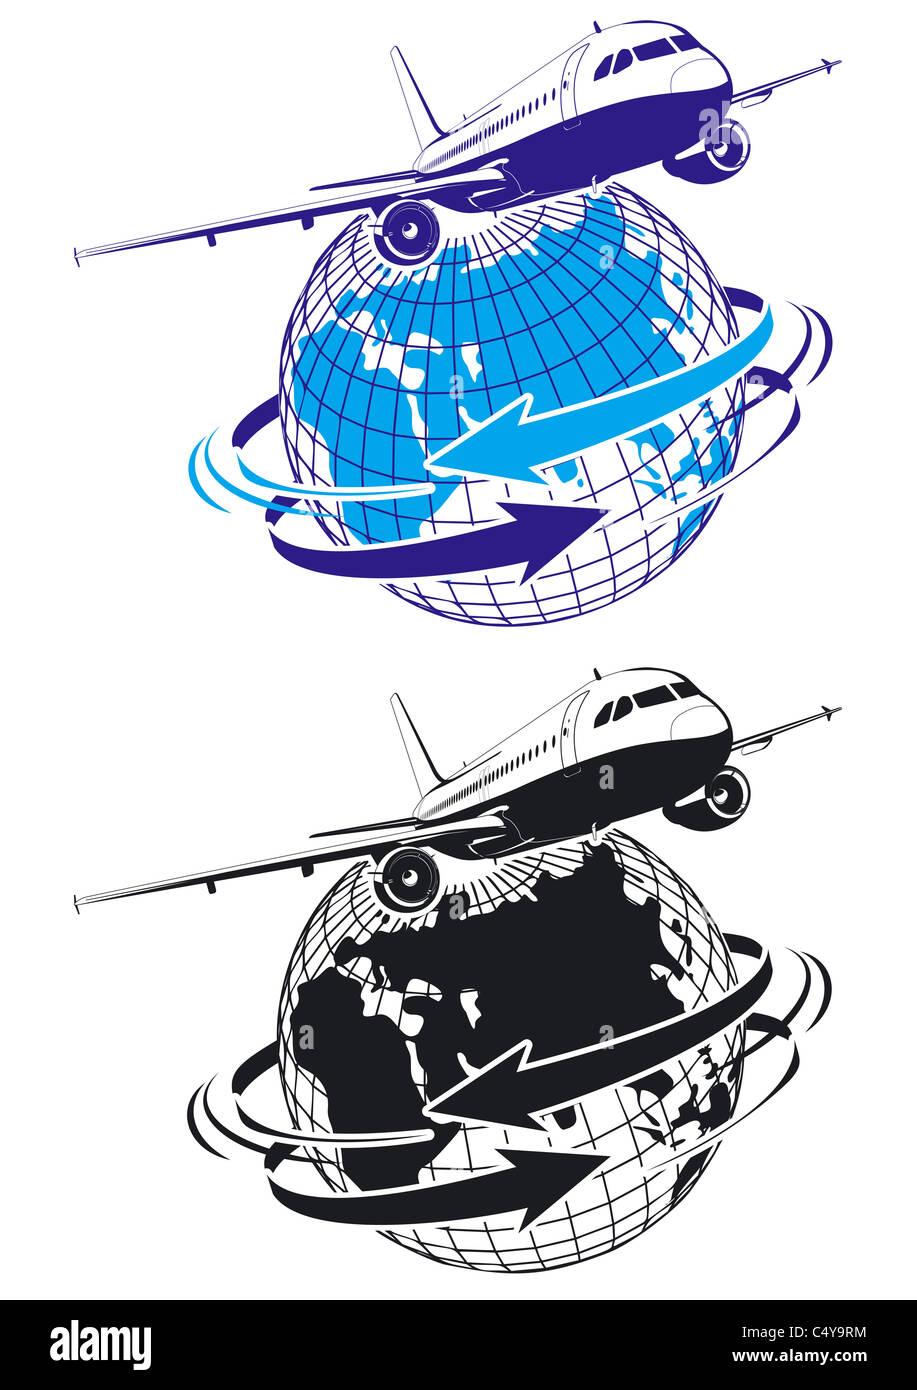 airliner as a logo - Stock Image